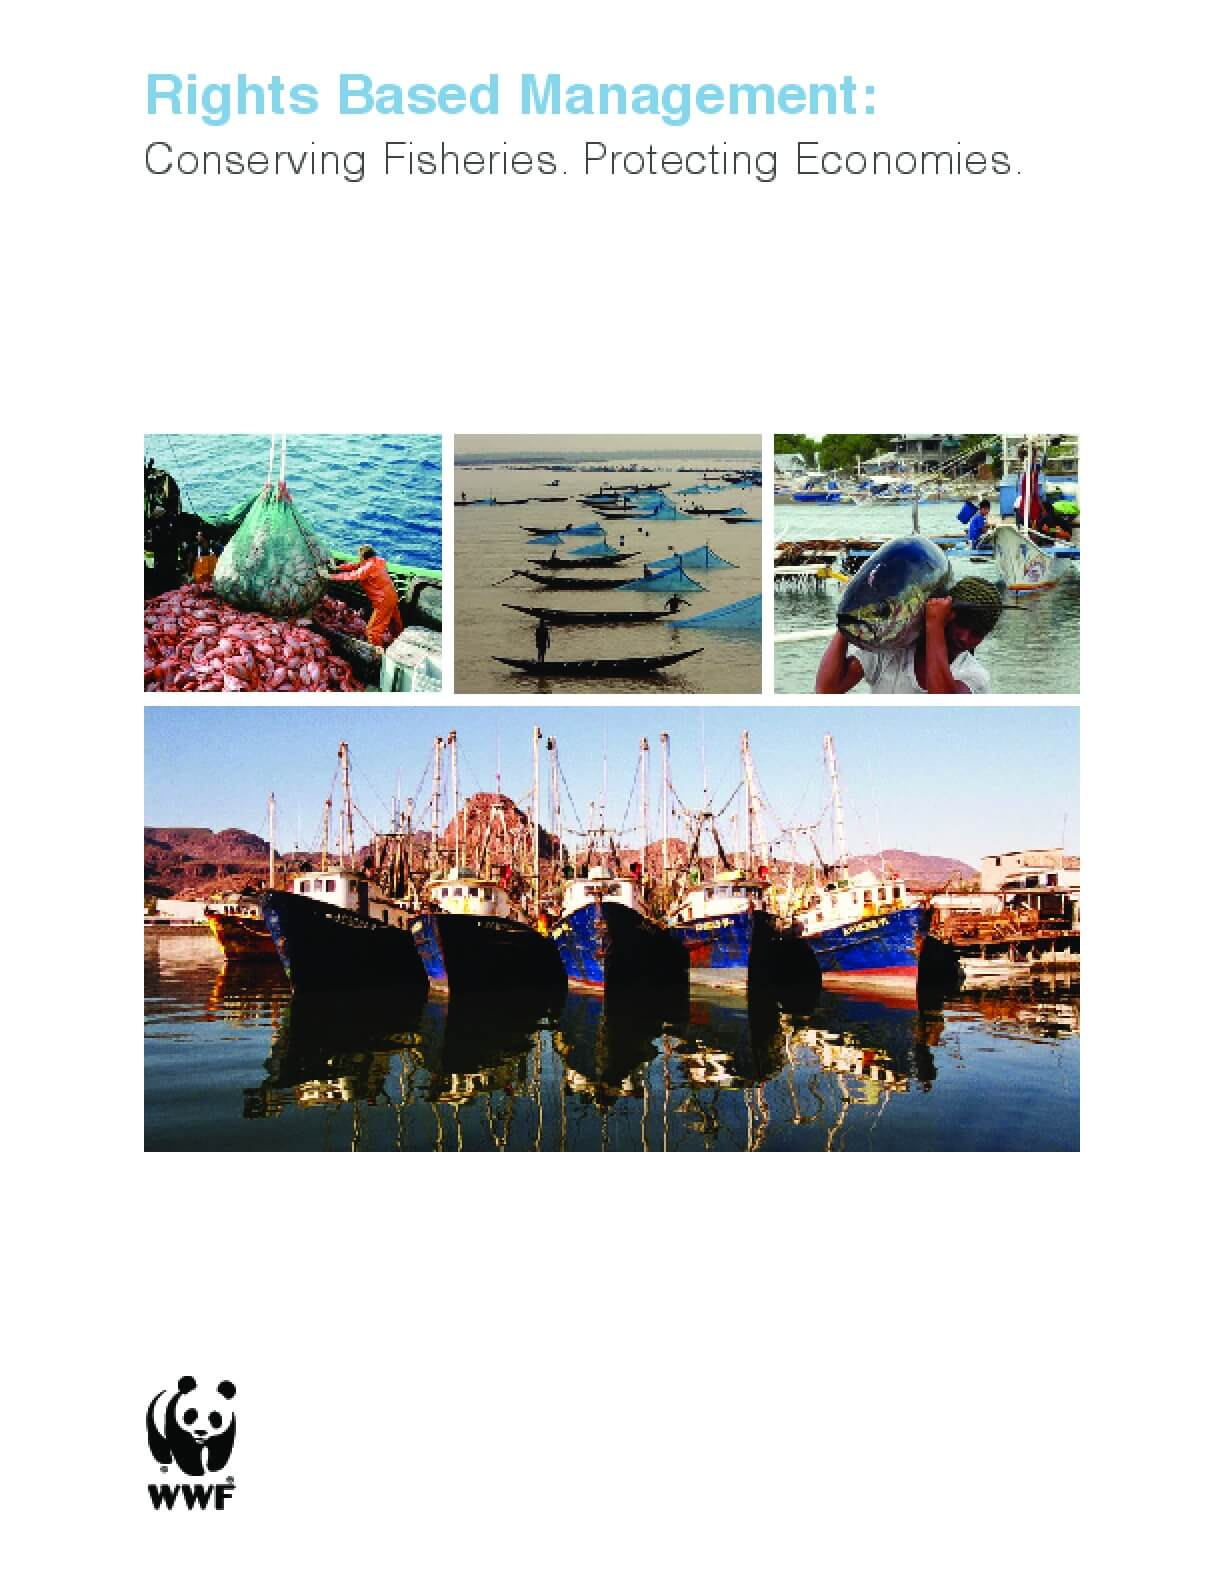 Rights-Based Management: Conserving Fisheries, Protecting Economies